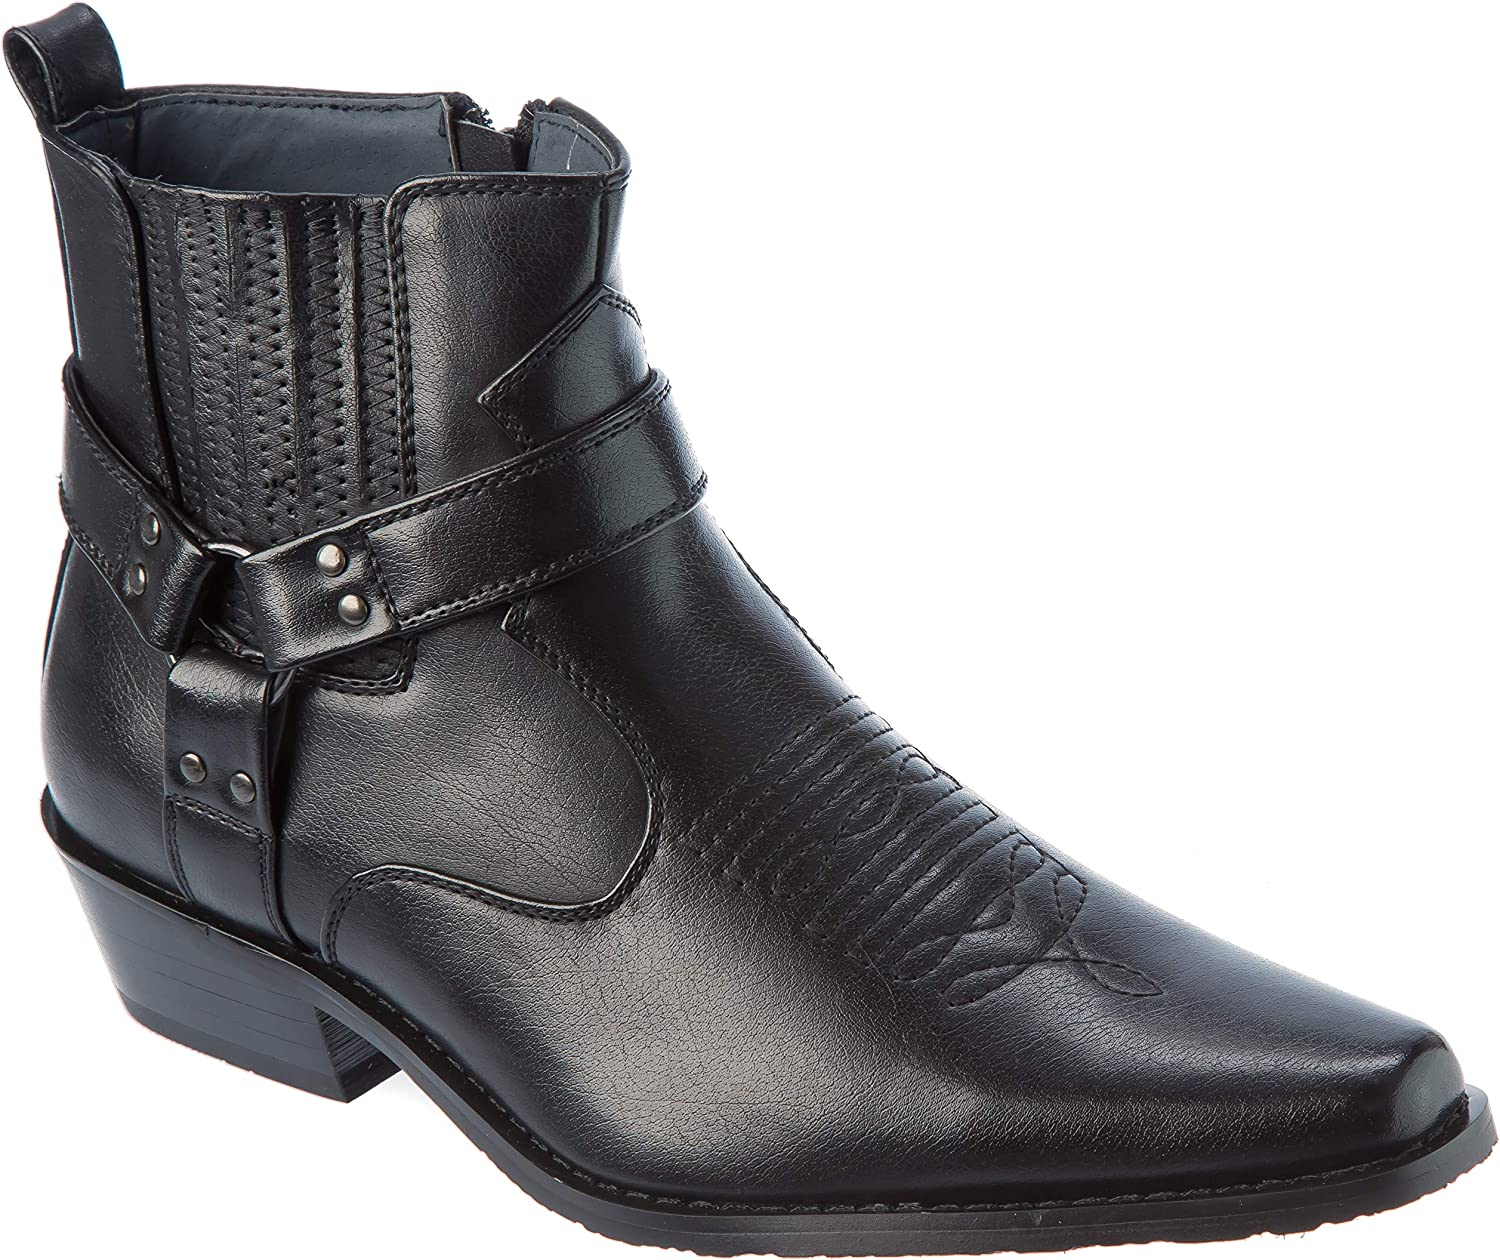 western01 Mens Wester Style Cow-Boy Boots PU-Leather Dress-Shoes